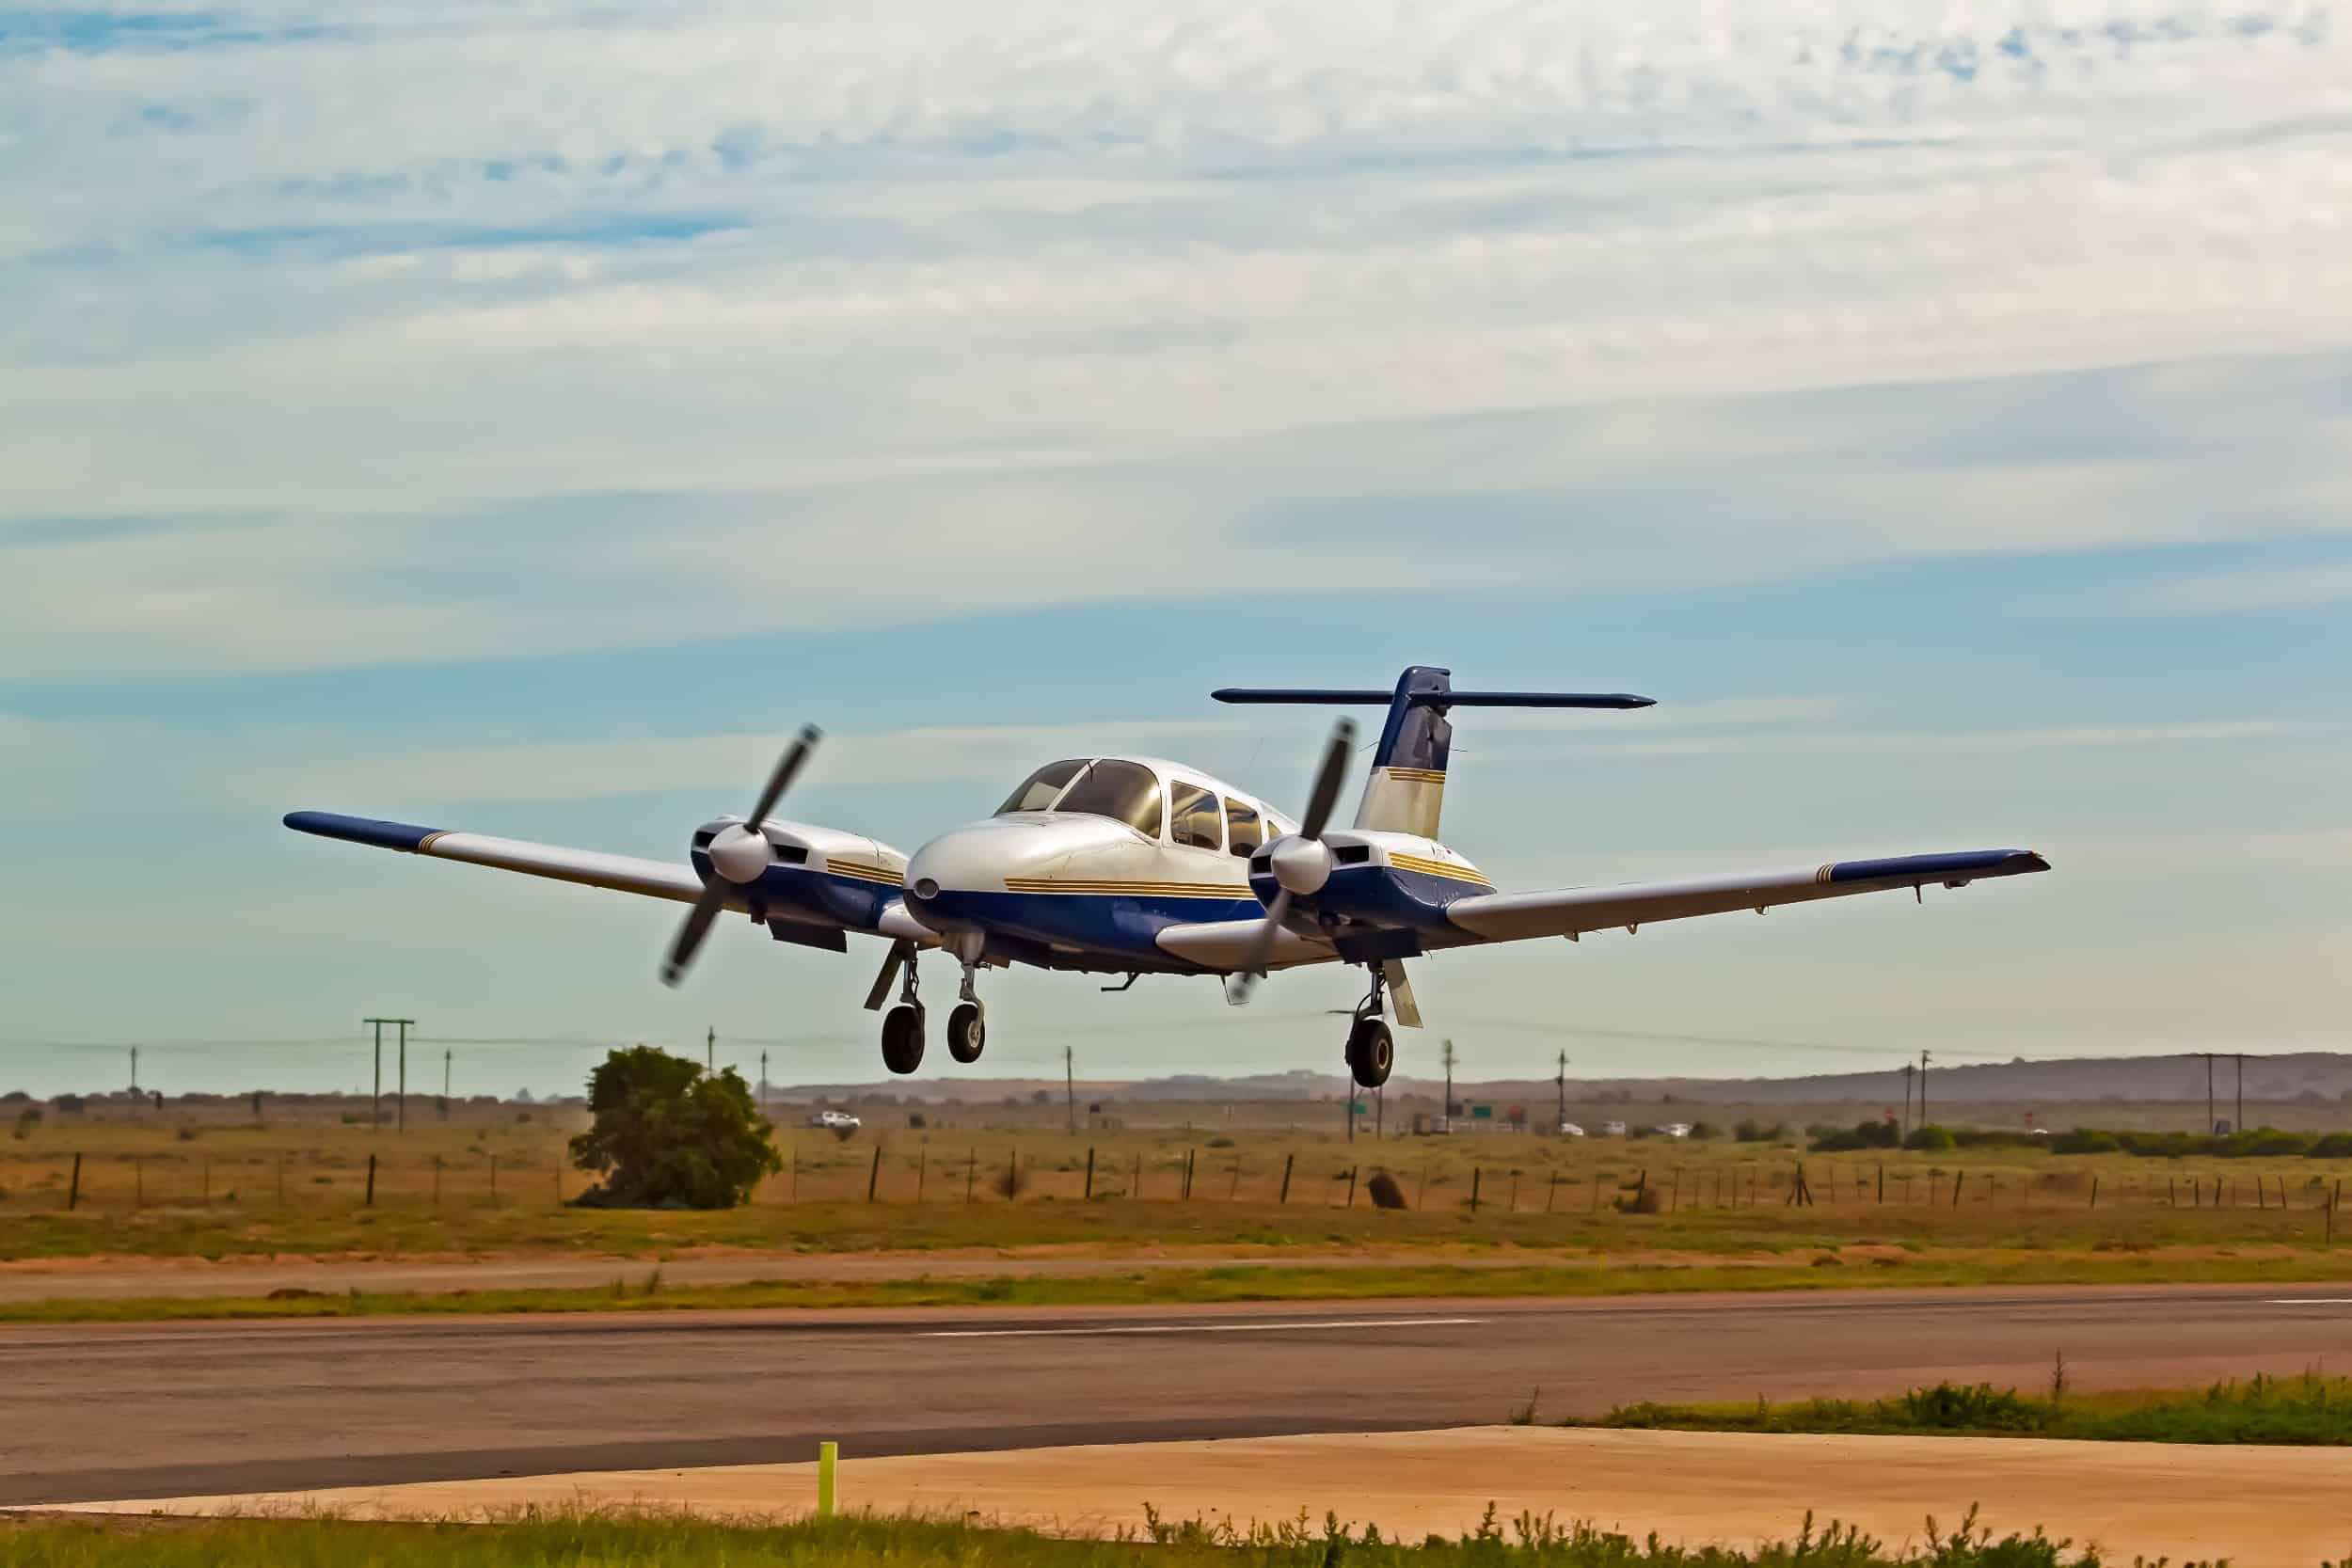 Twin blade propeller plane landing on a runway